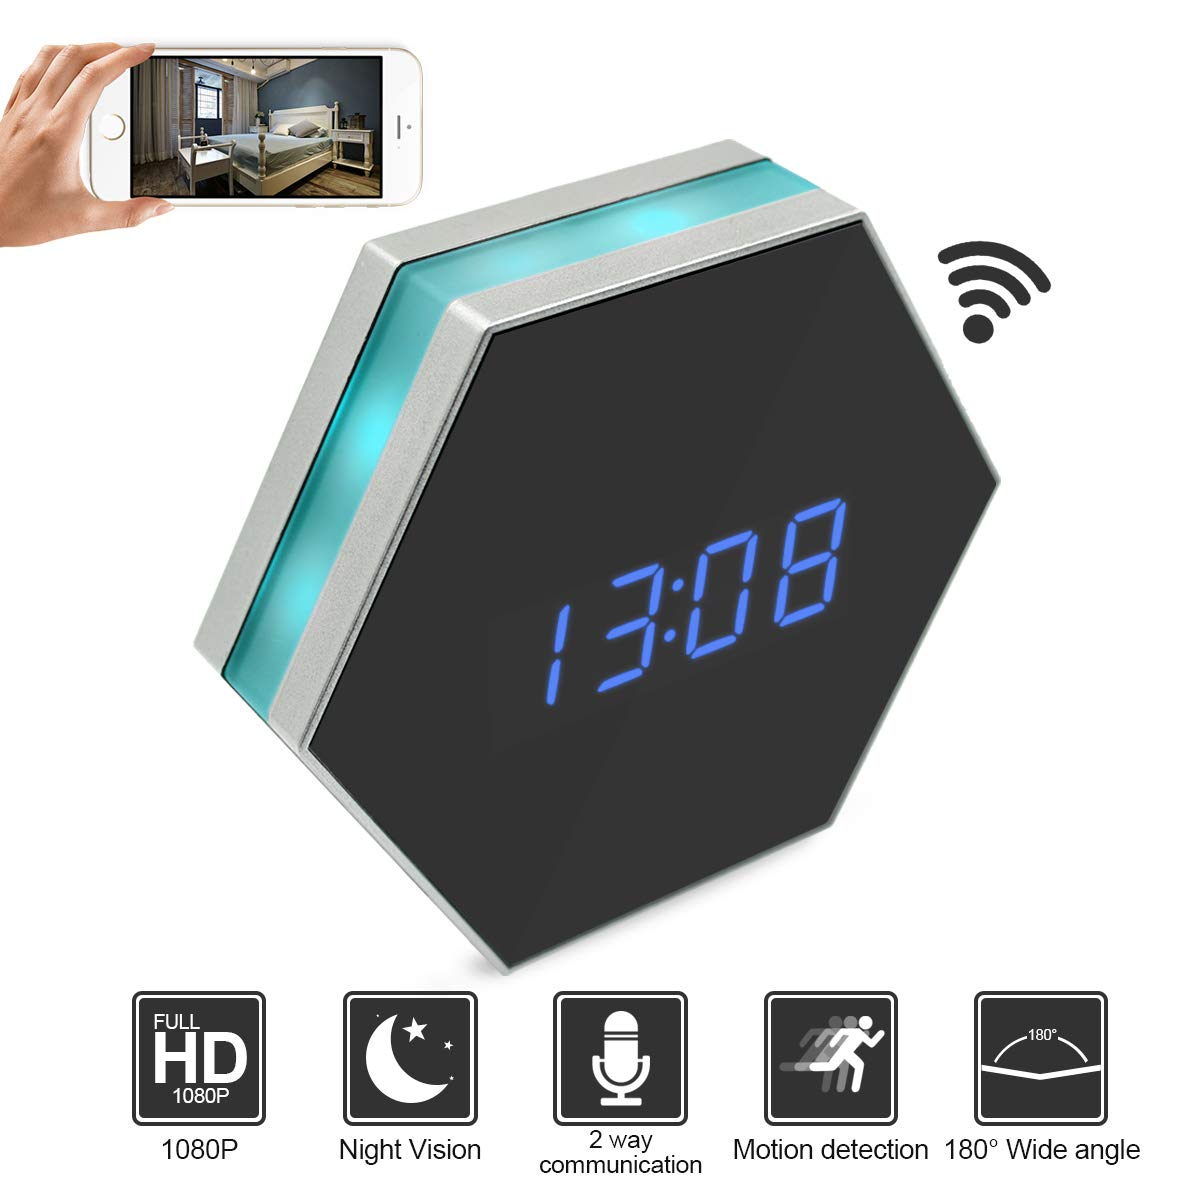 Camakt HD 1080P WiFi Hidden Spy Camera Alarm Clock Camera Night Vision with Motion Detector,Intercom and 160 Degree, Wireless Security Nanny Camera